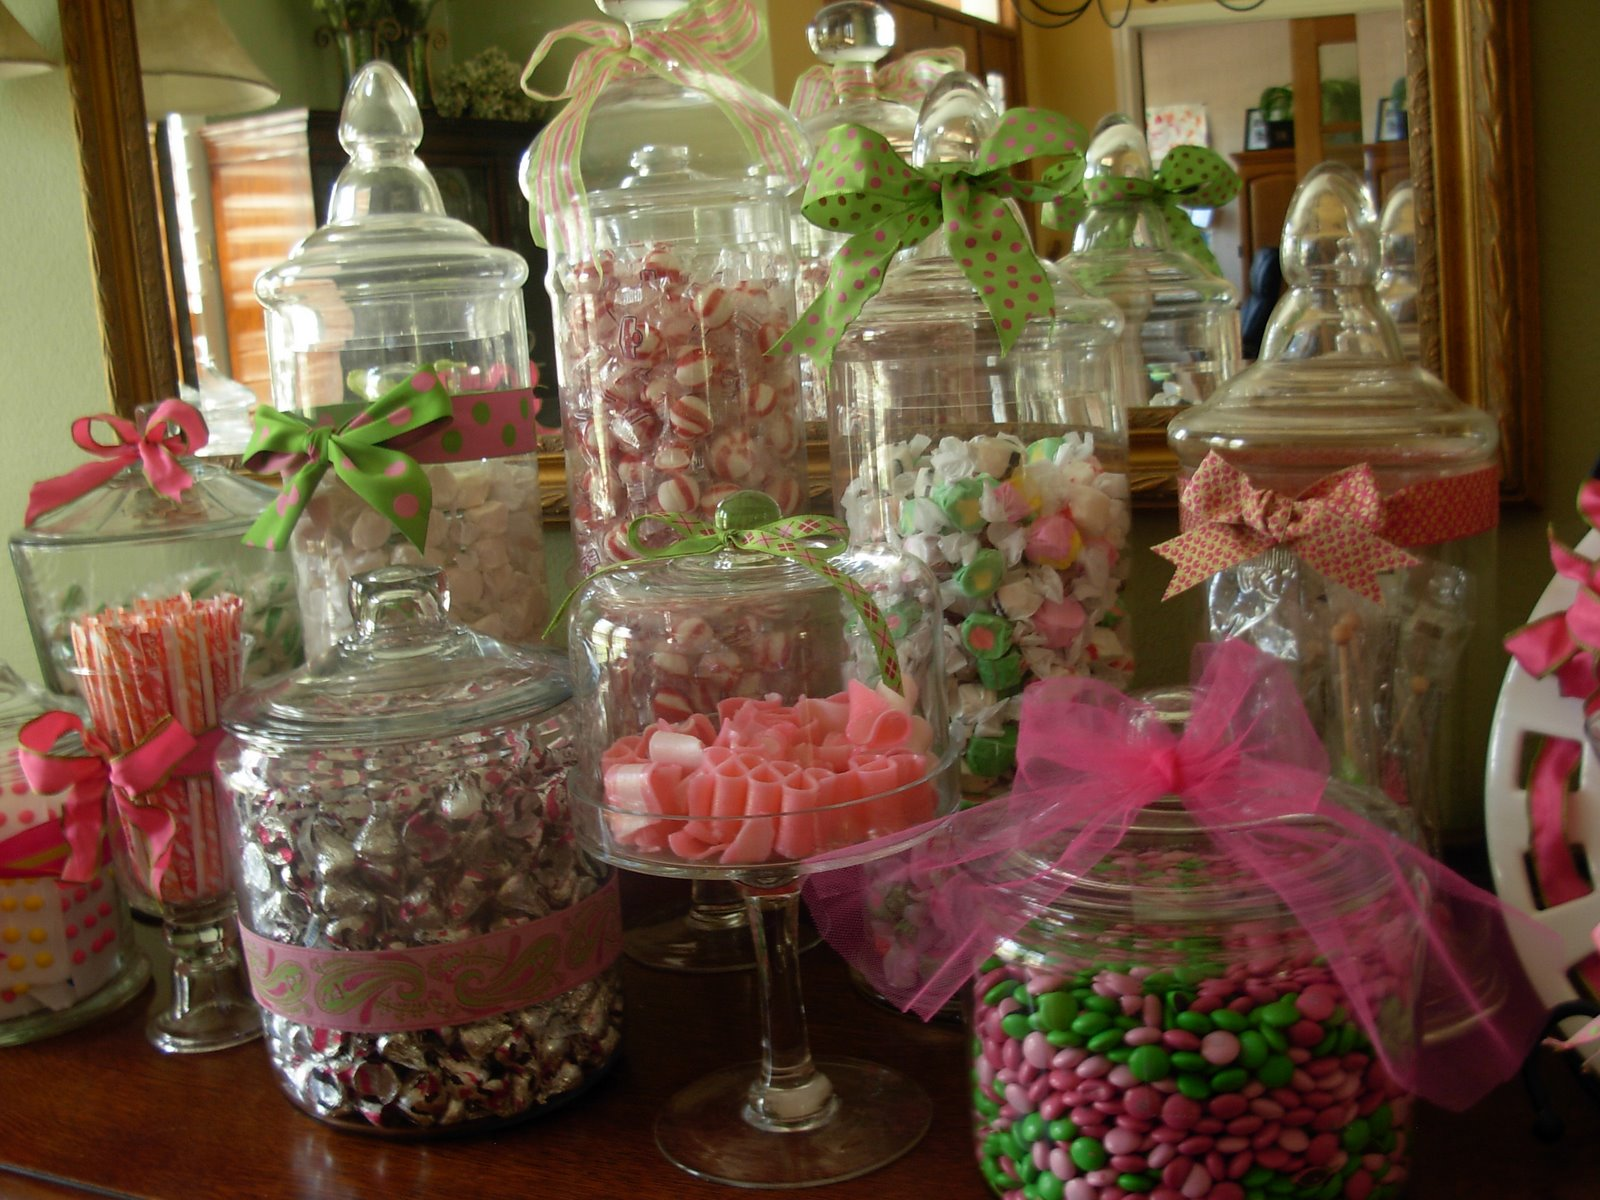 candy molds creating a candy inspired wedding theme